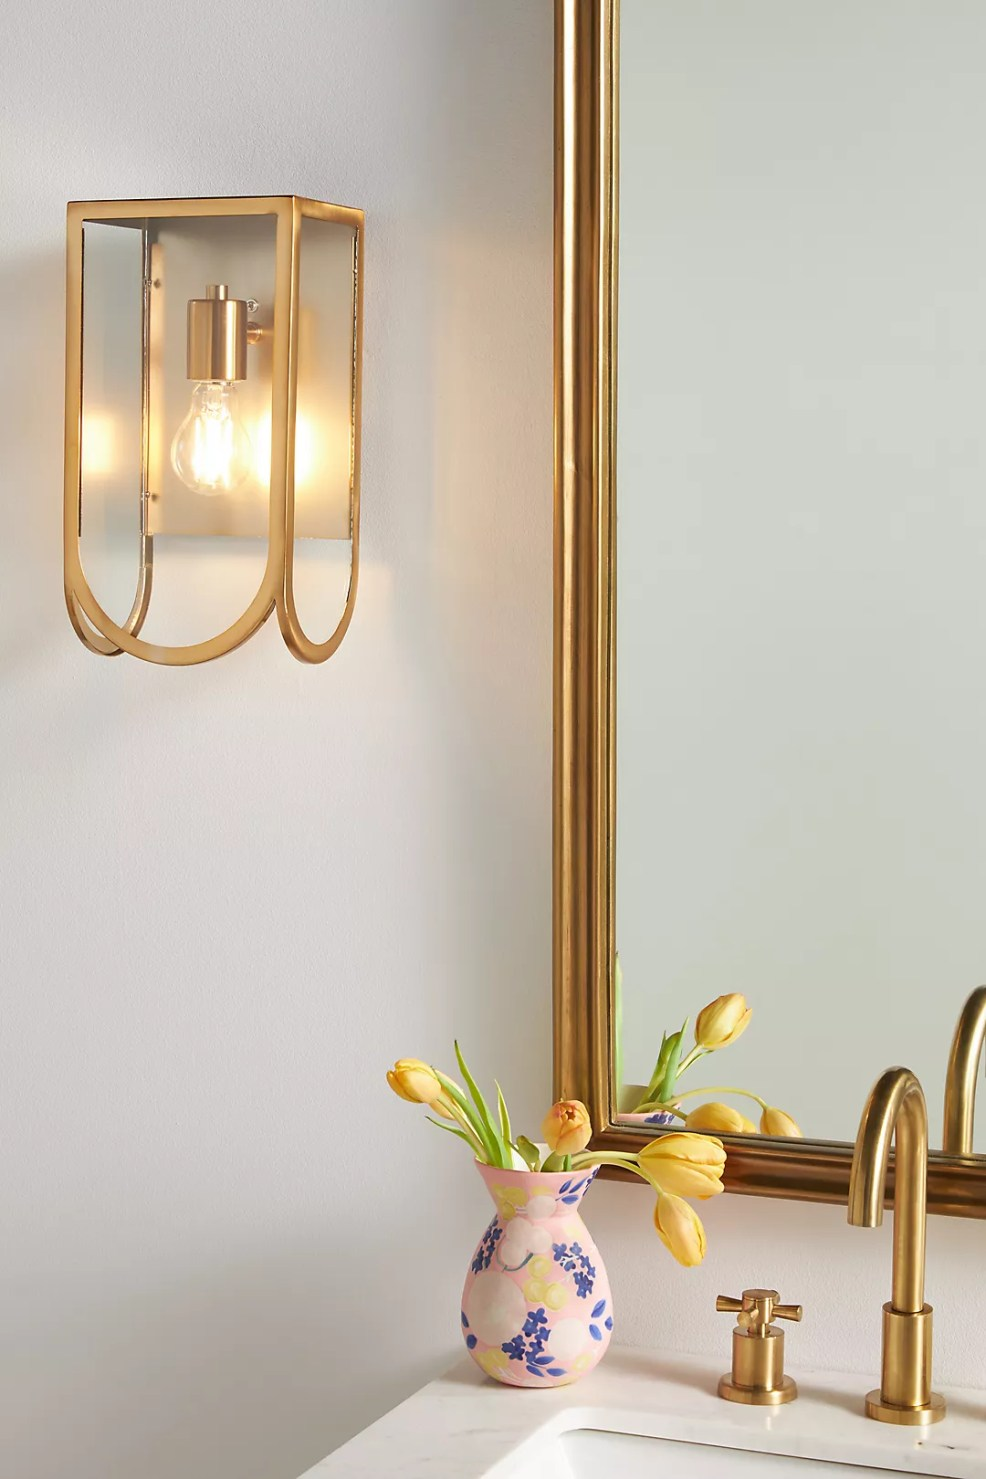 Anthropologie Bathroom by popular US interior design blog, E. Interiors Design: image of a bathroom with gold frame mirror, white sink with gold faucet, gold sconce lighting, and a pink and blue floral vase filled with yellow tulips.